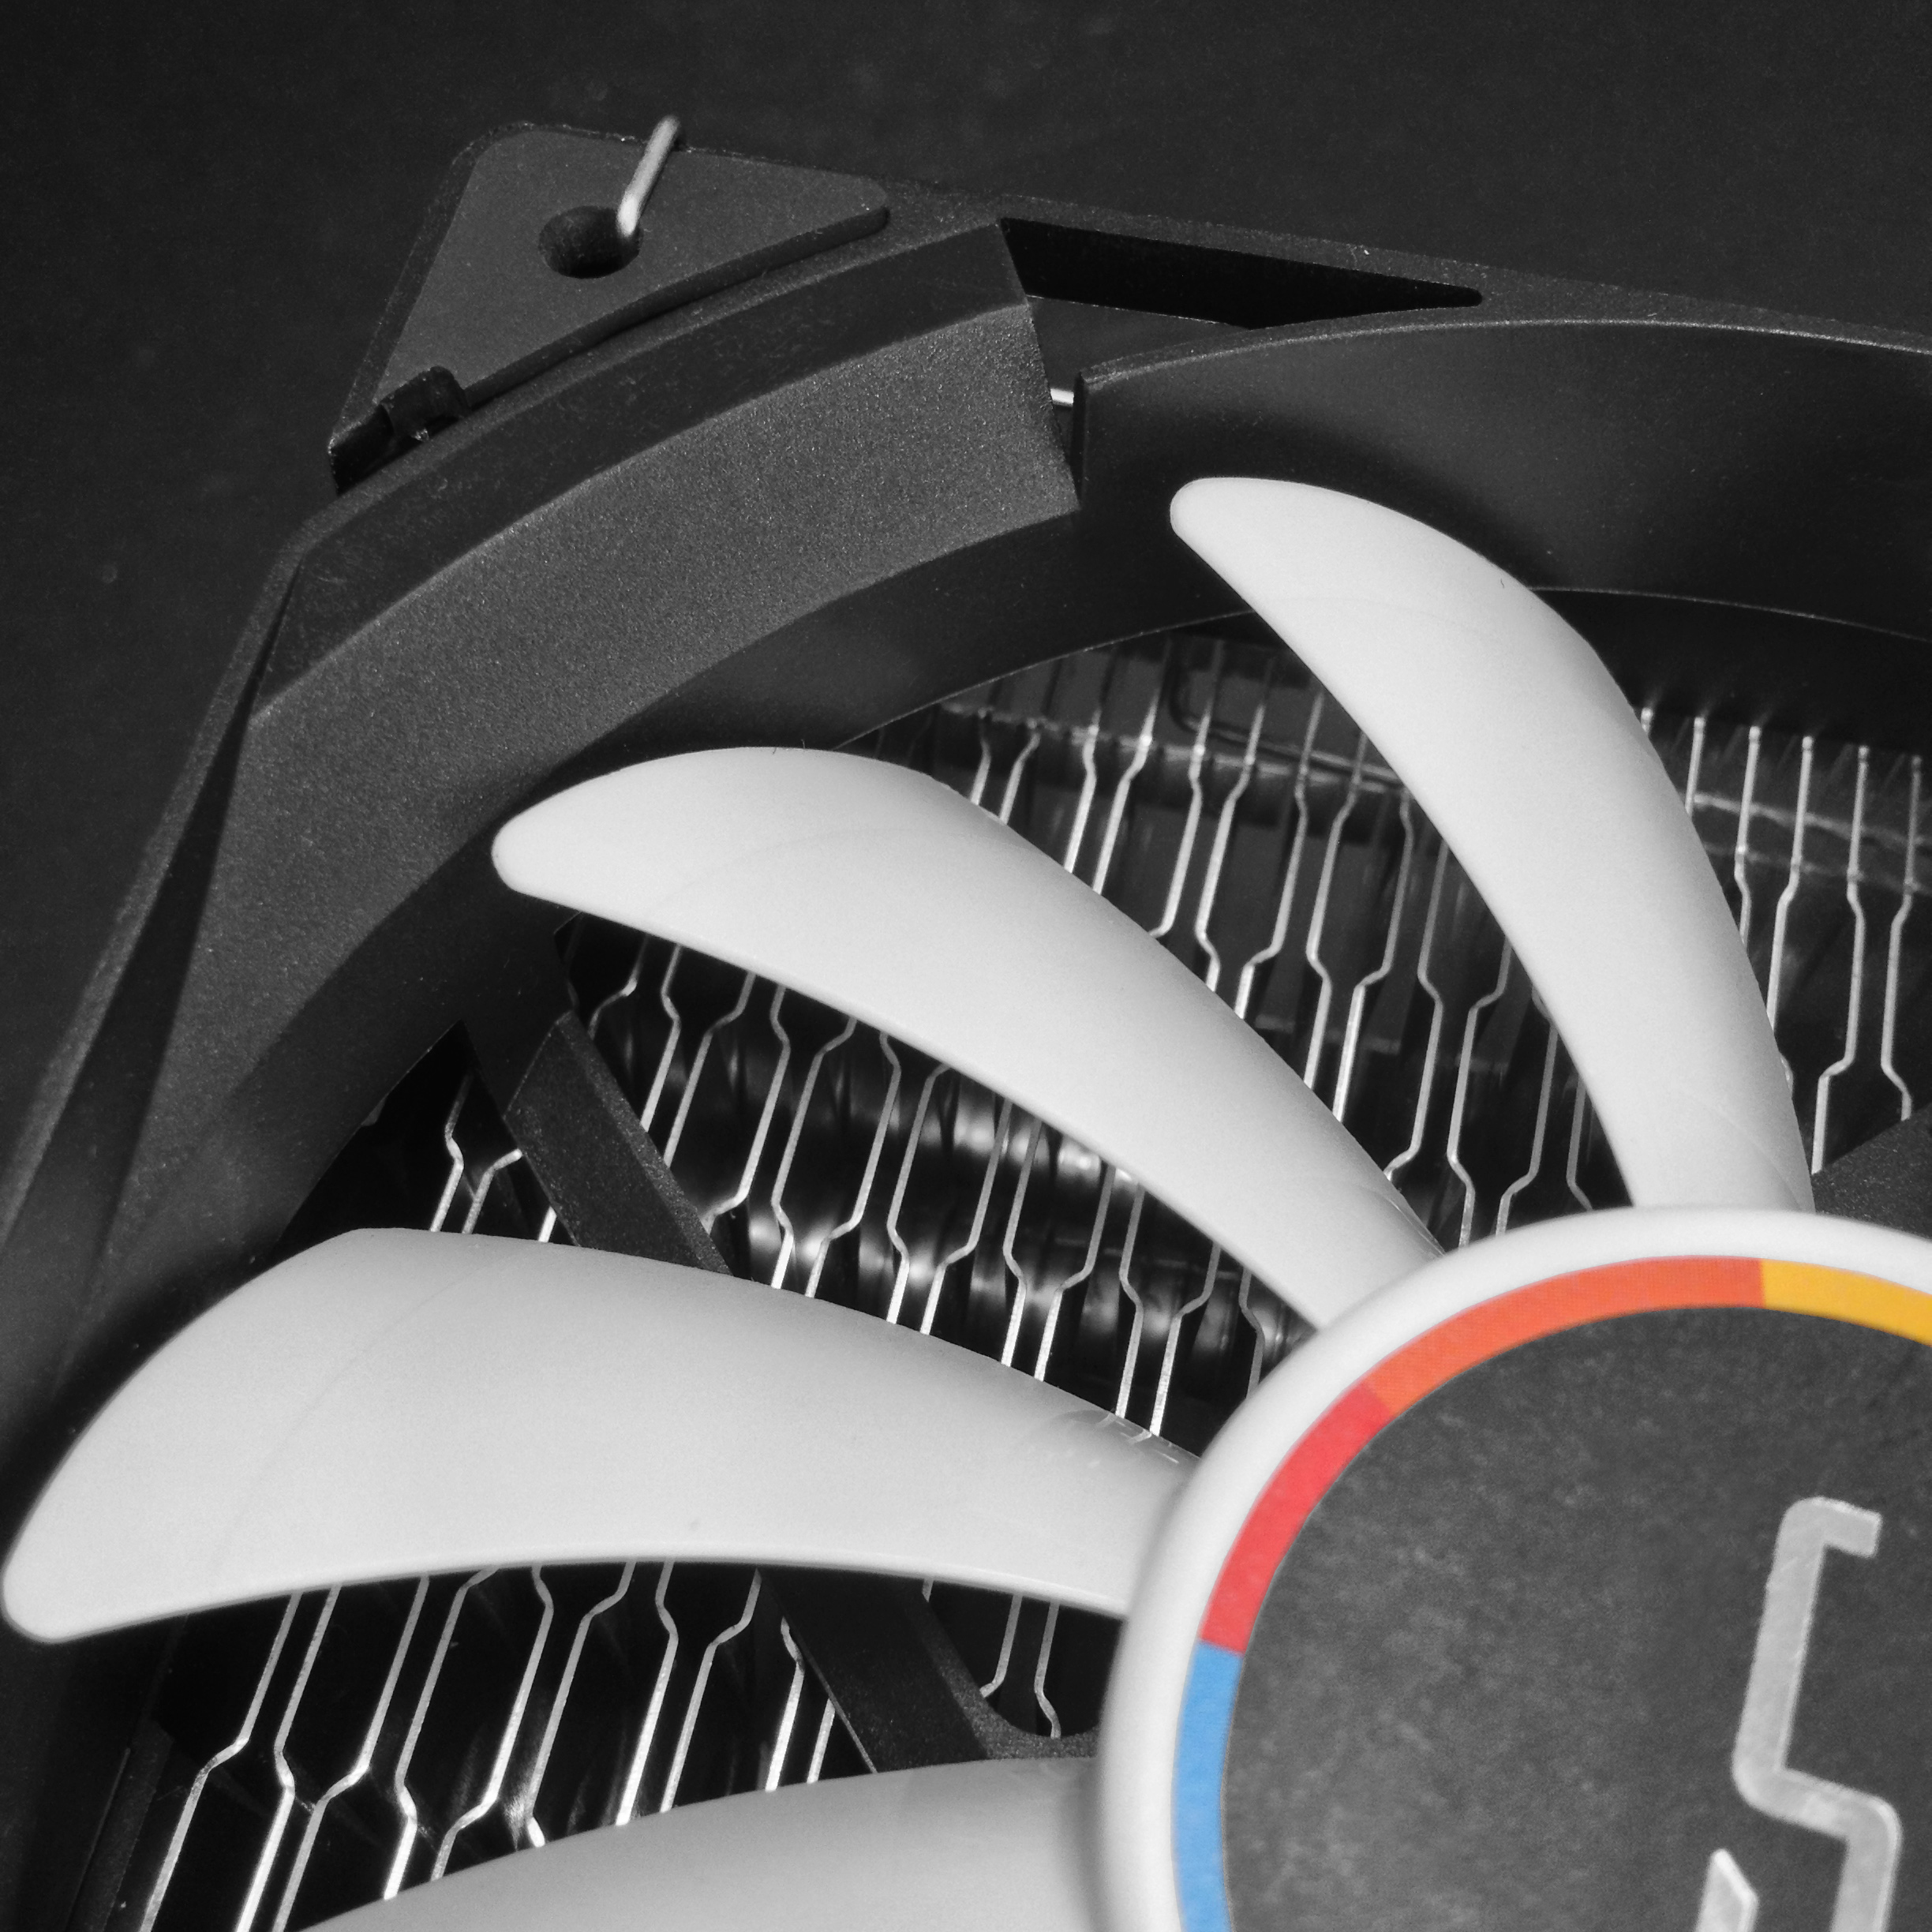 CRYORIG Soon to Release the H7 CPU Cooler for the Mainstream